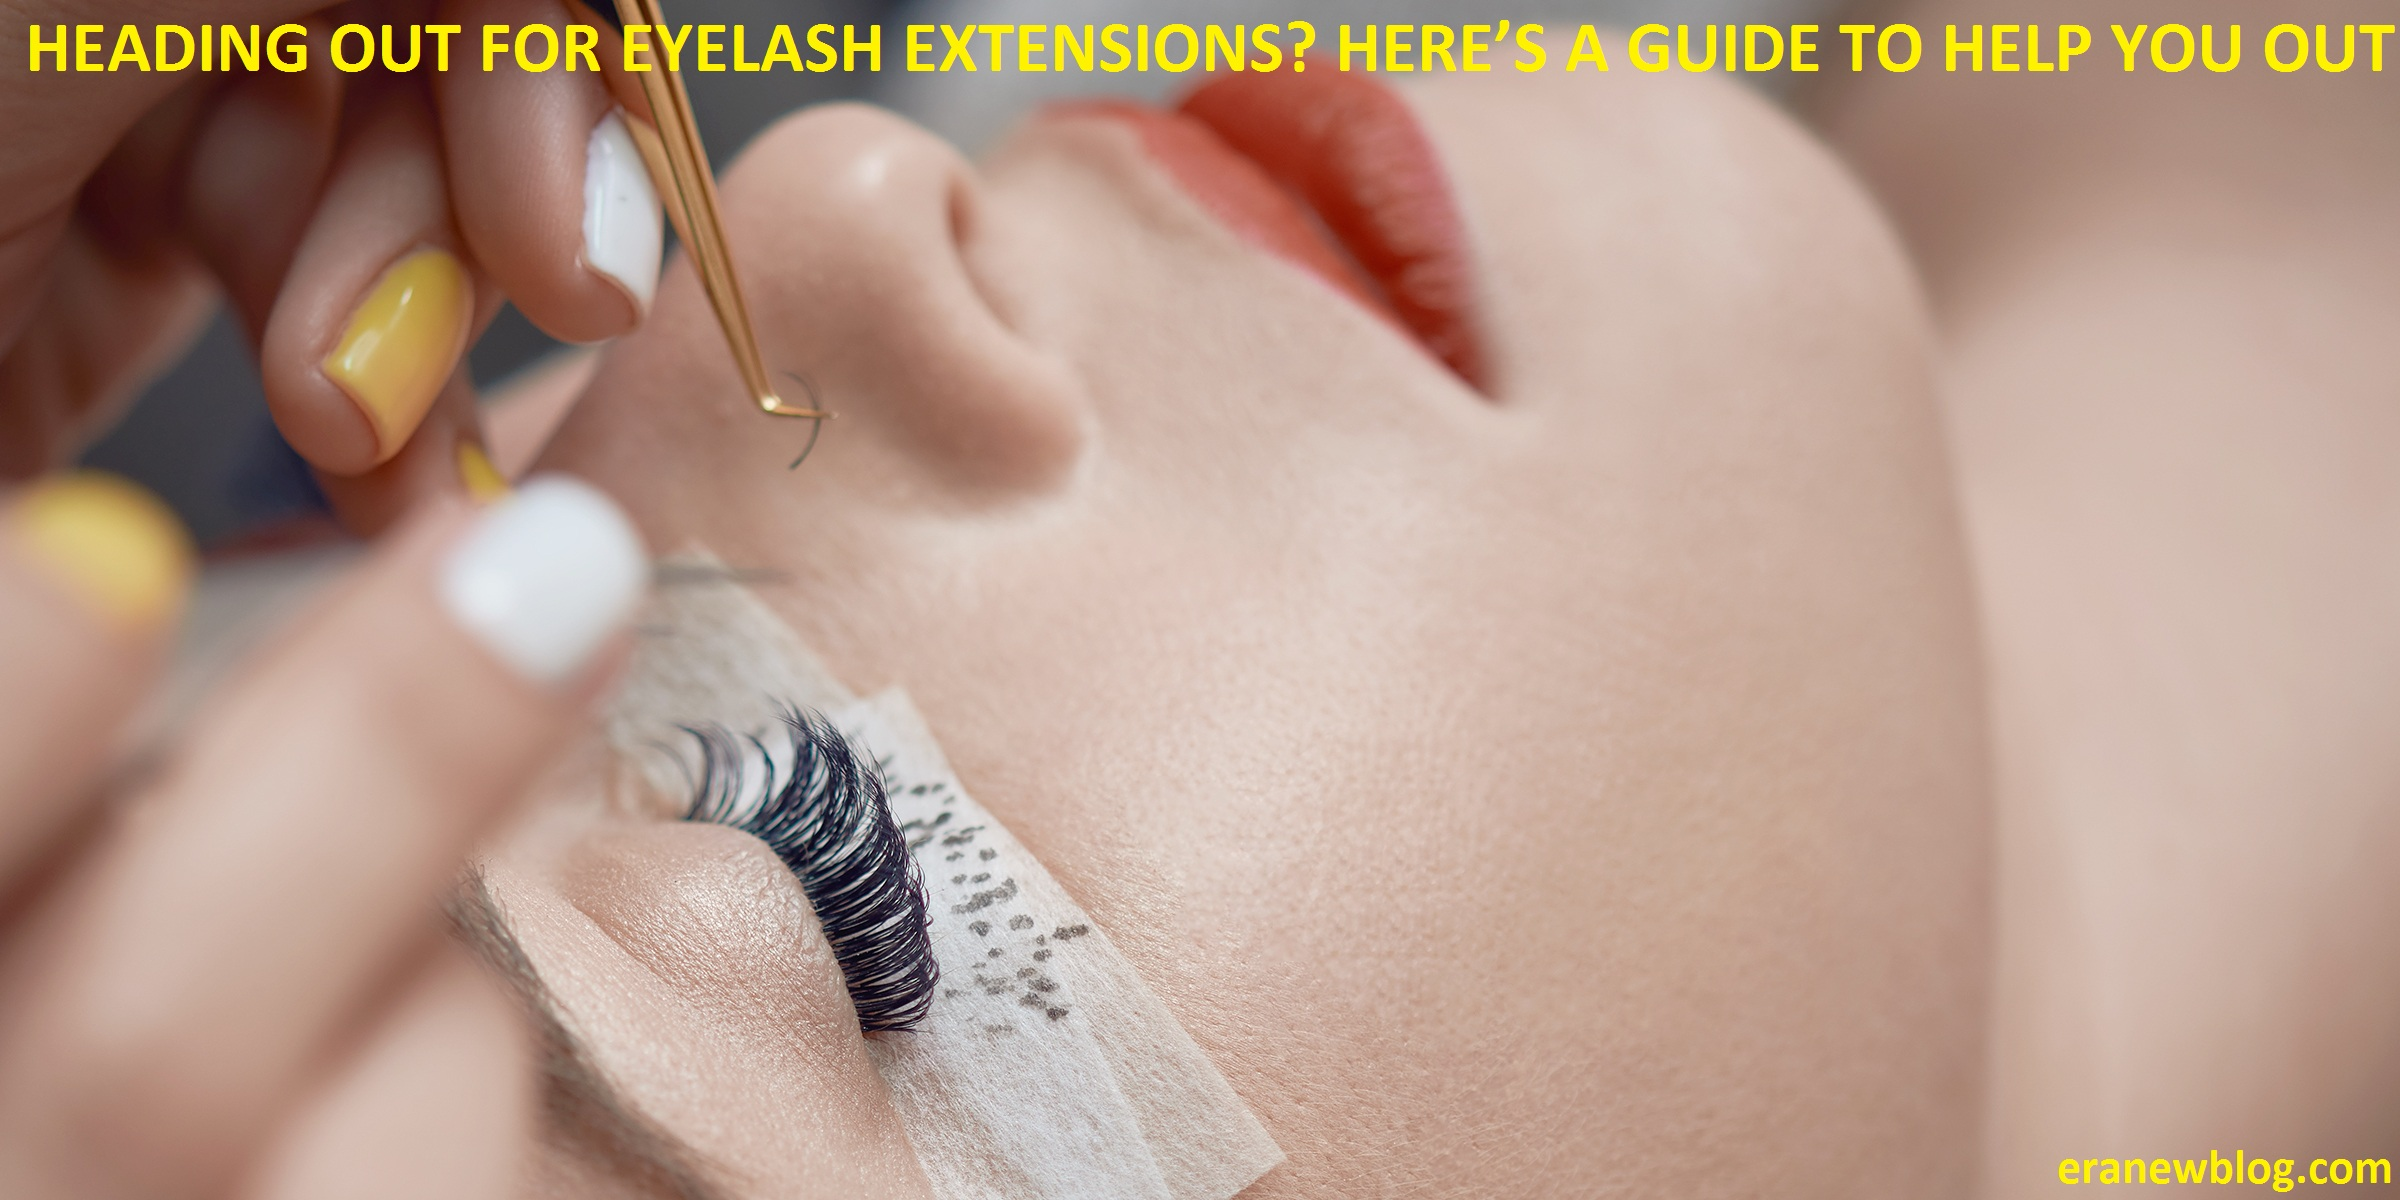 HEADING OUT FOR EYELASH EXTENSIONS? HERE'S A GUIDE TO HELP YOU OUT